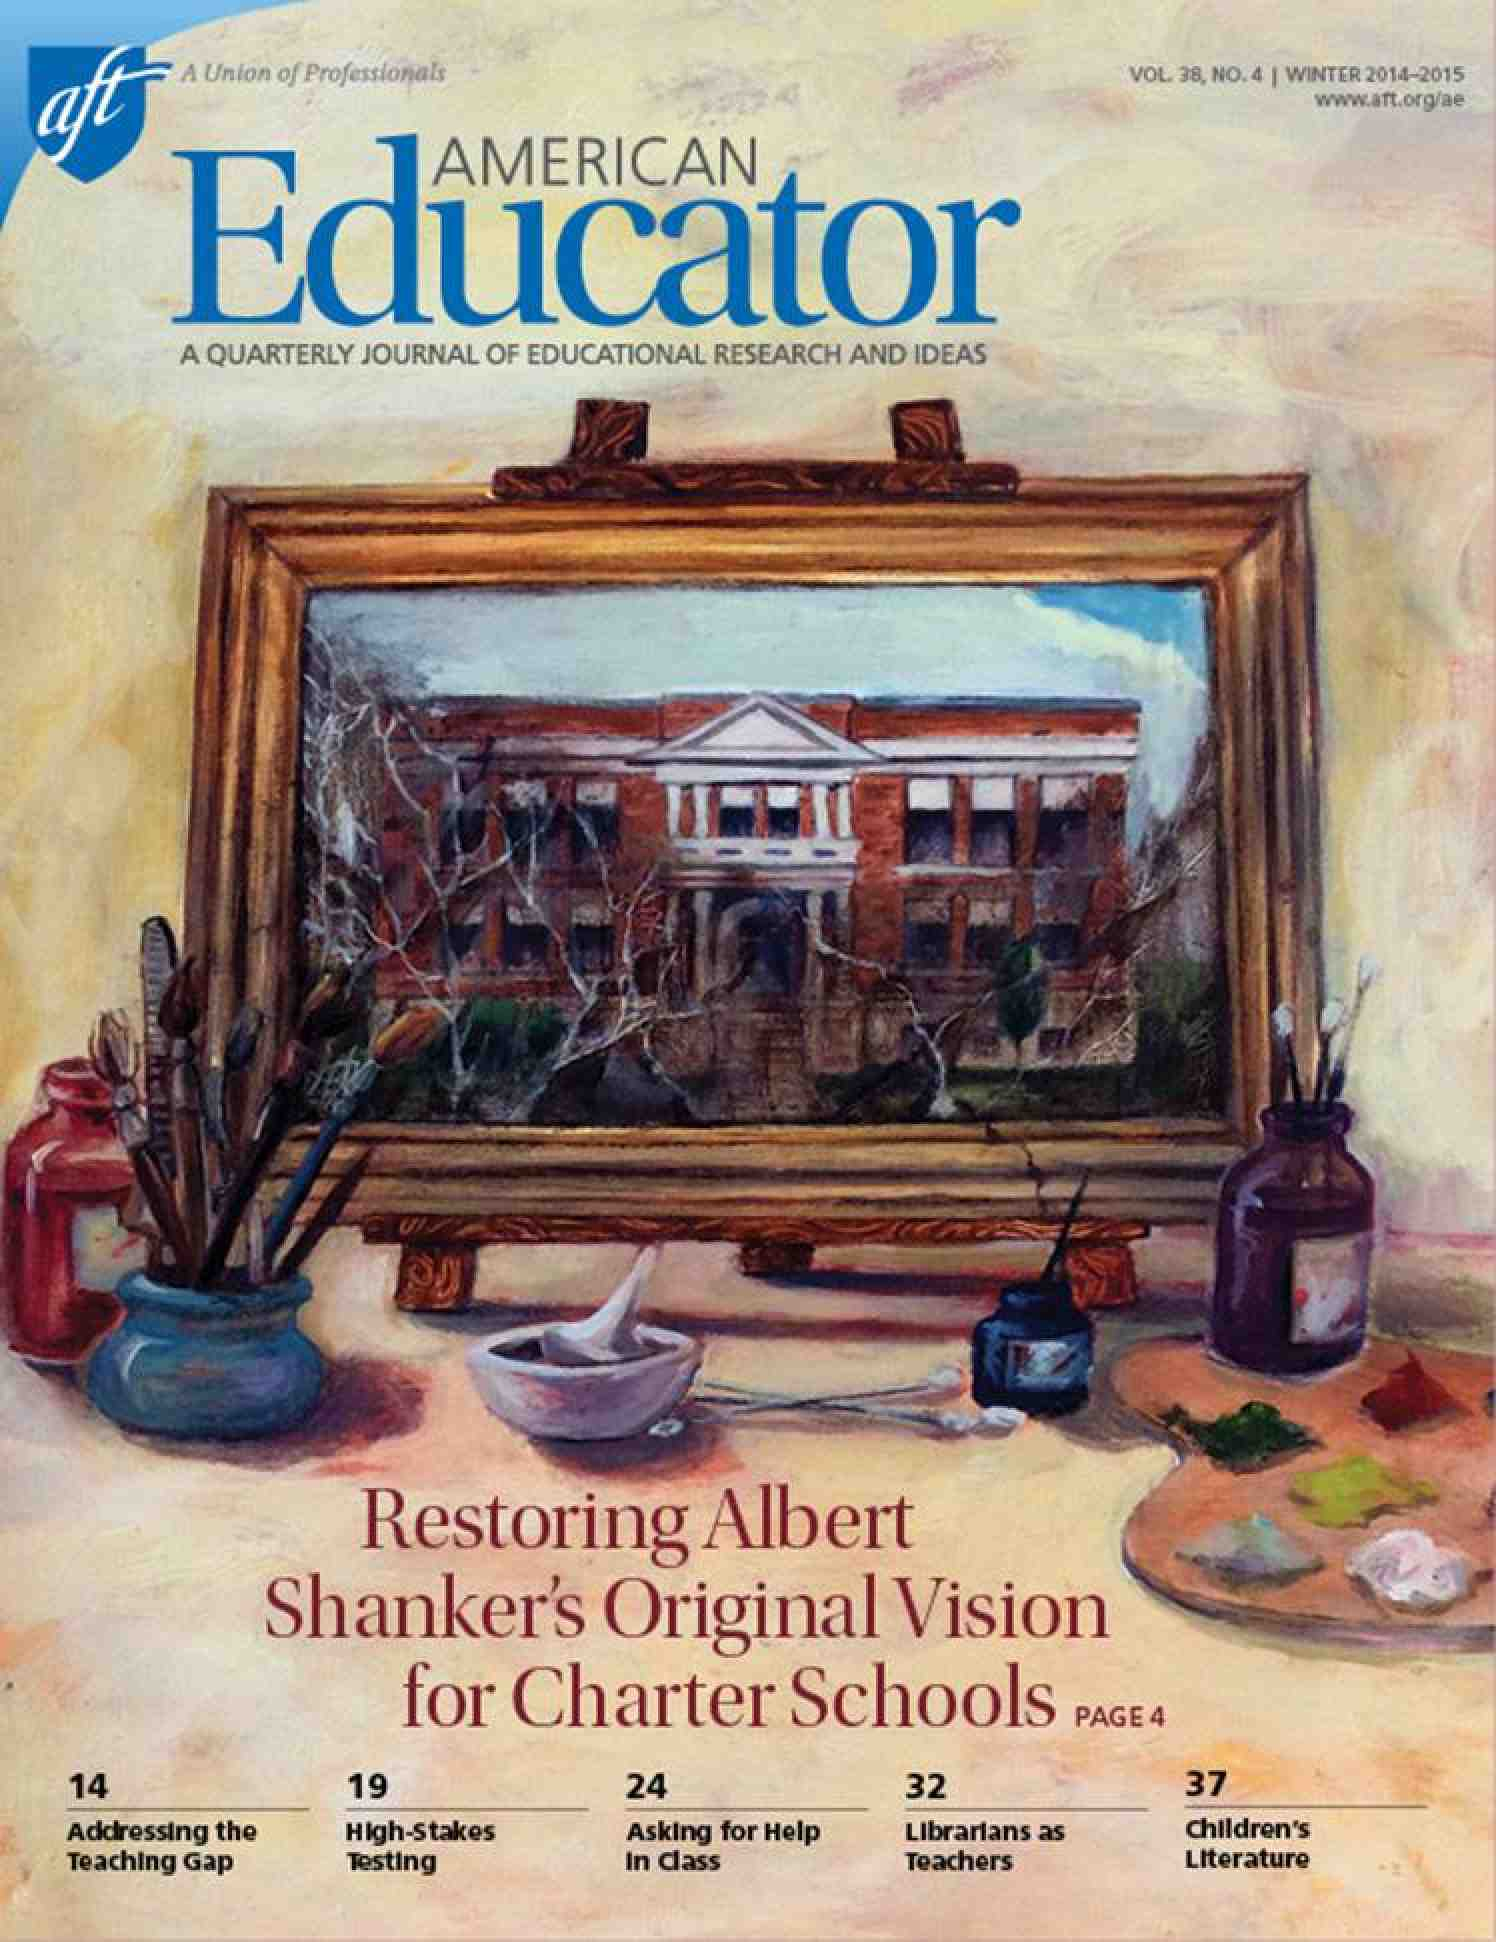 American Educator Winter 2014-2015